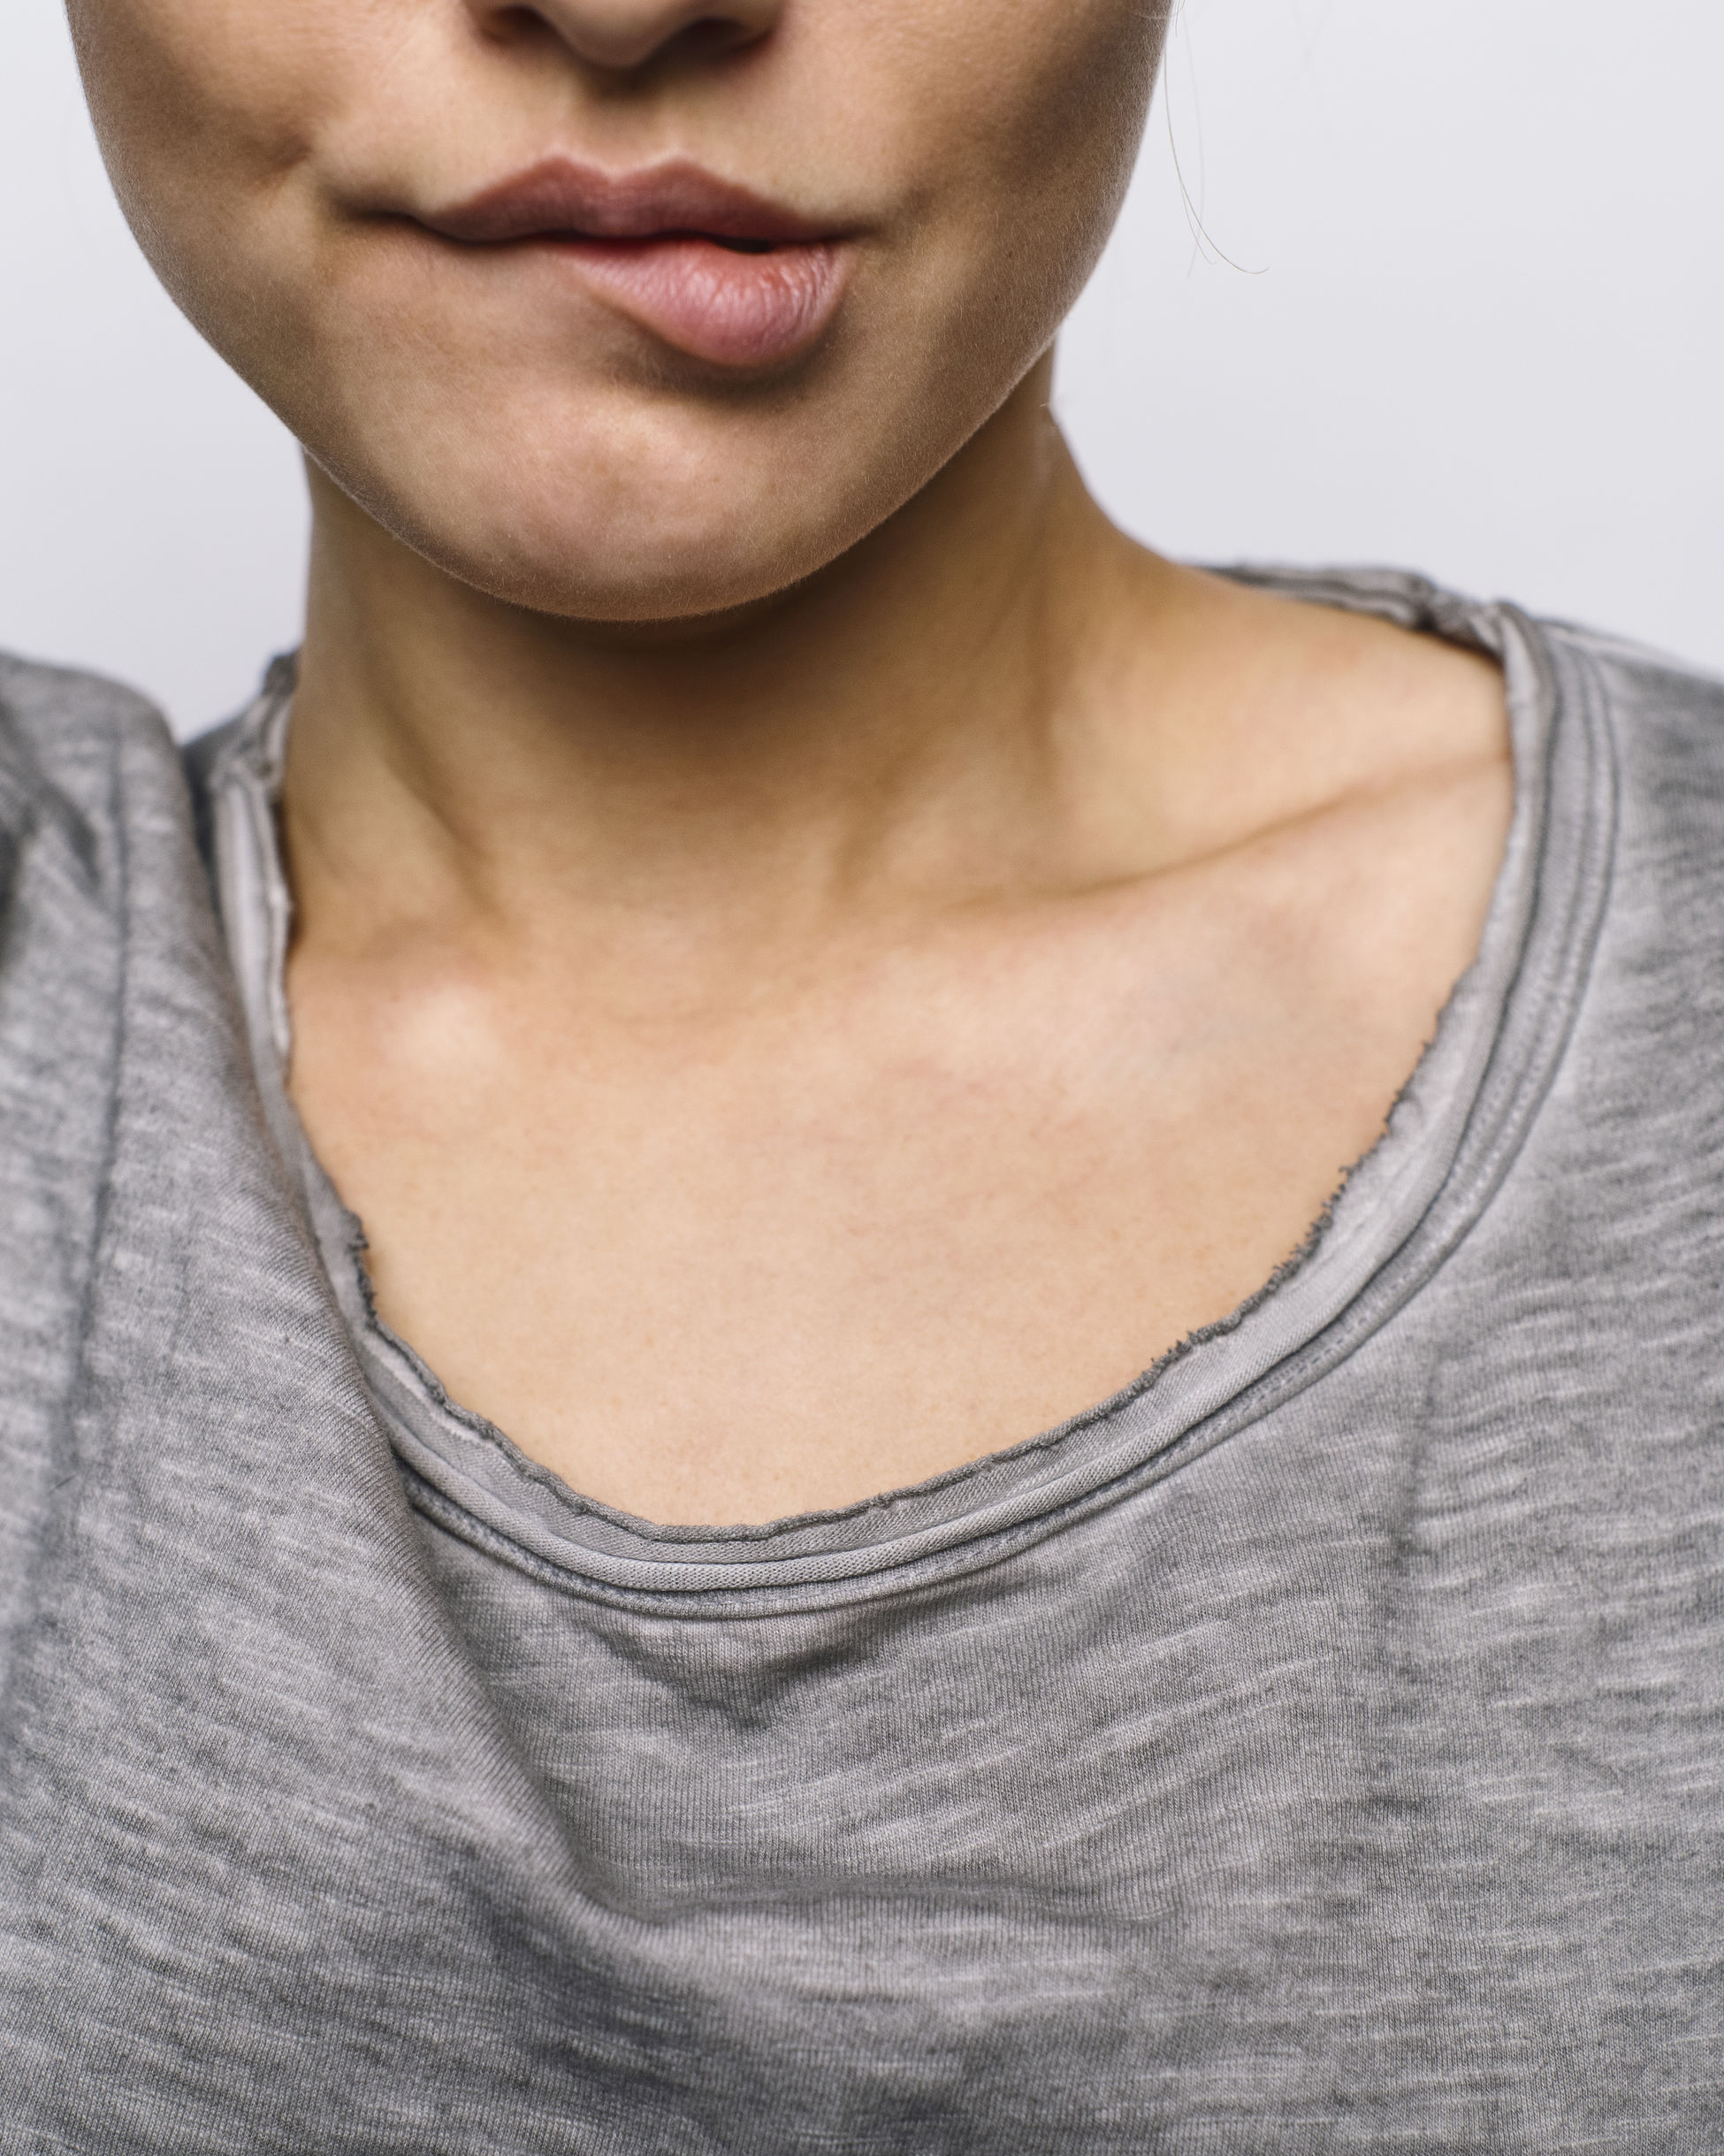 Experts Share 3 Ways to Help Reduce Swelling After an Injectable